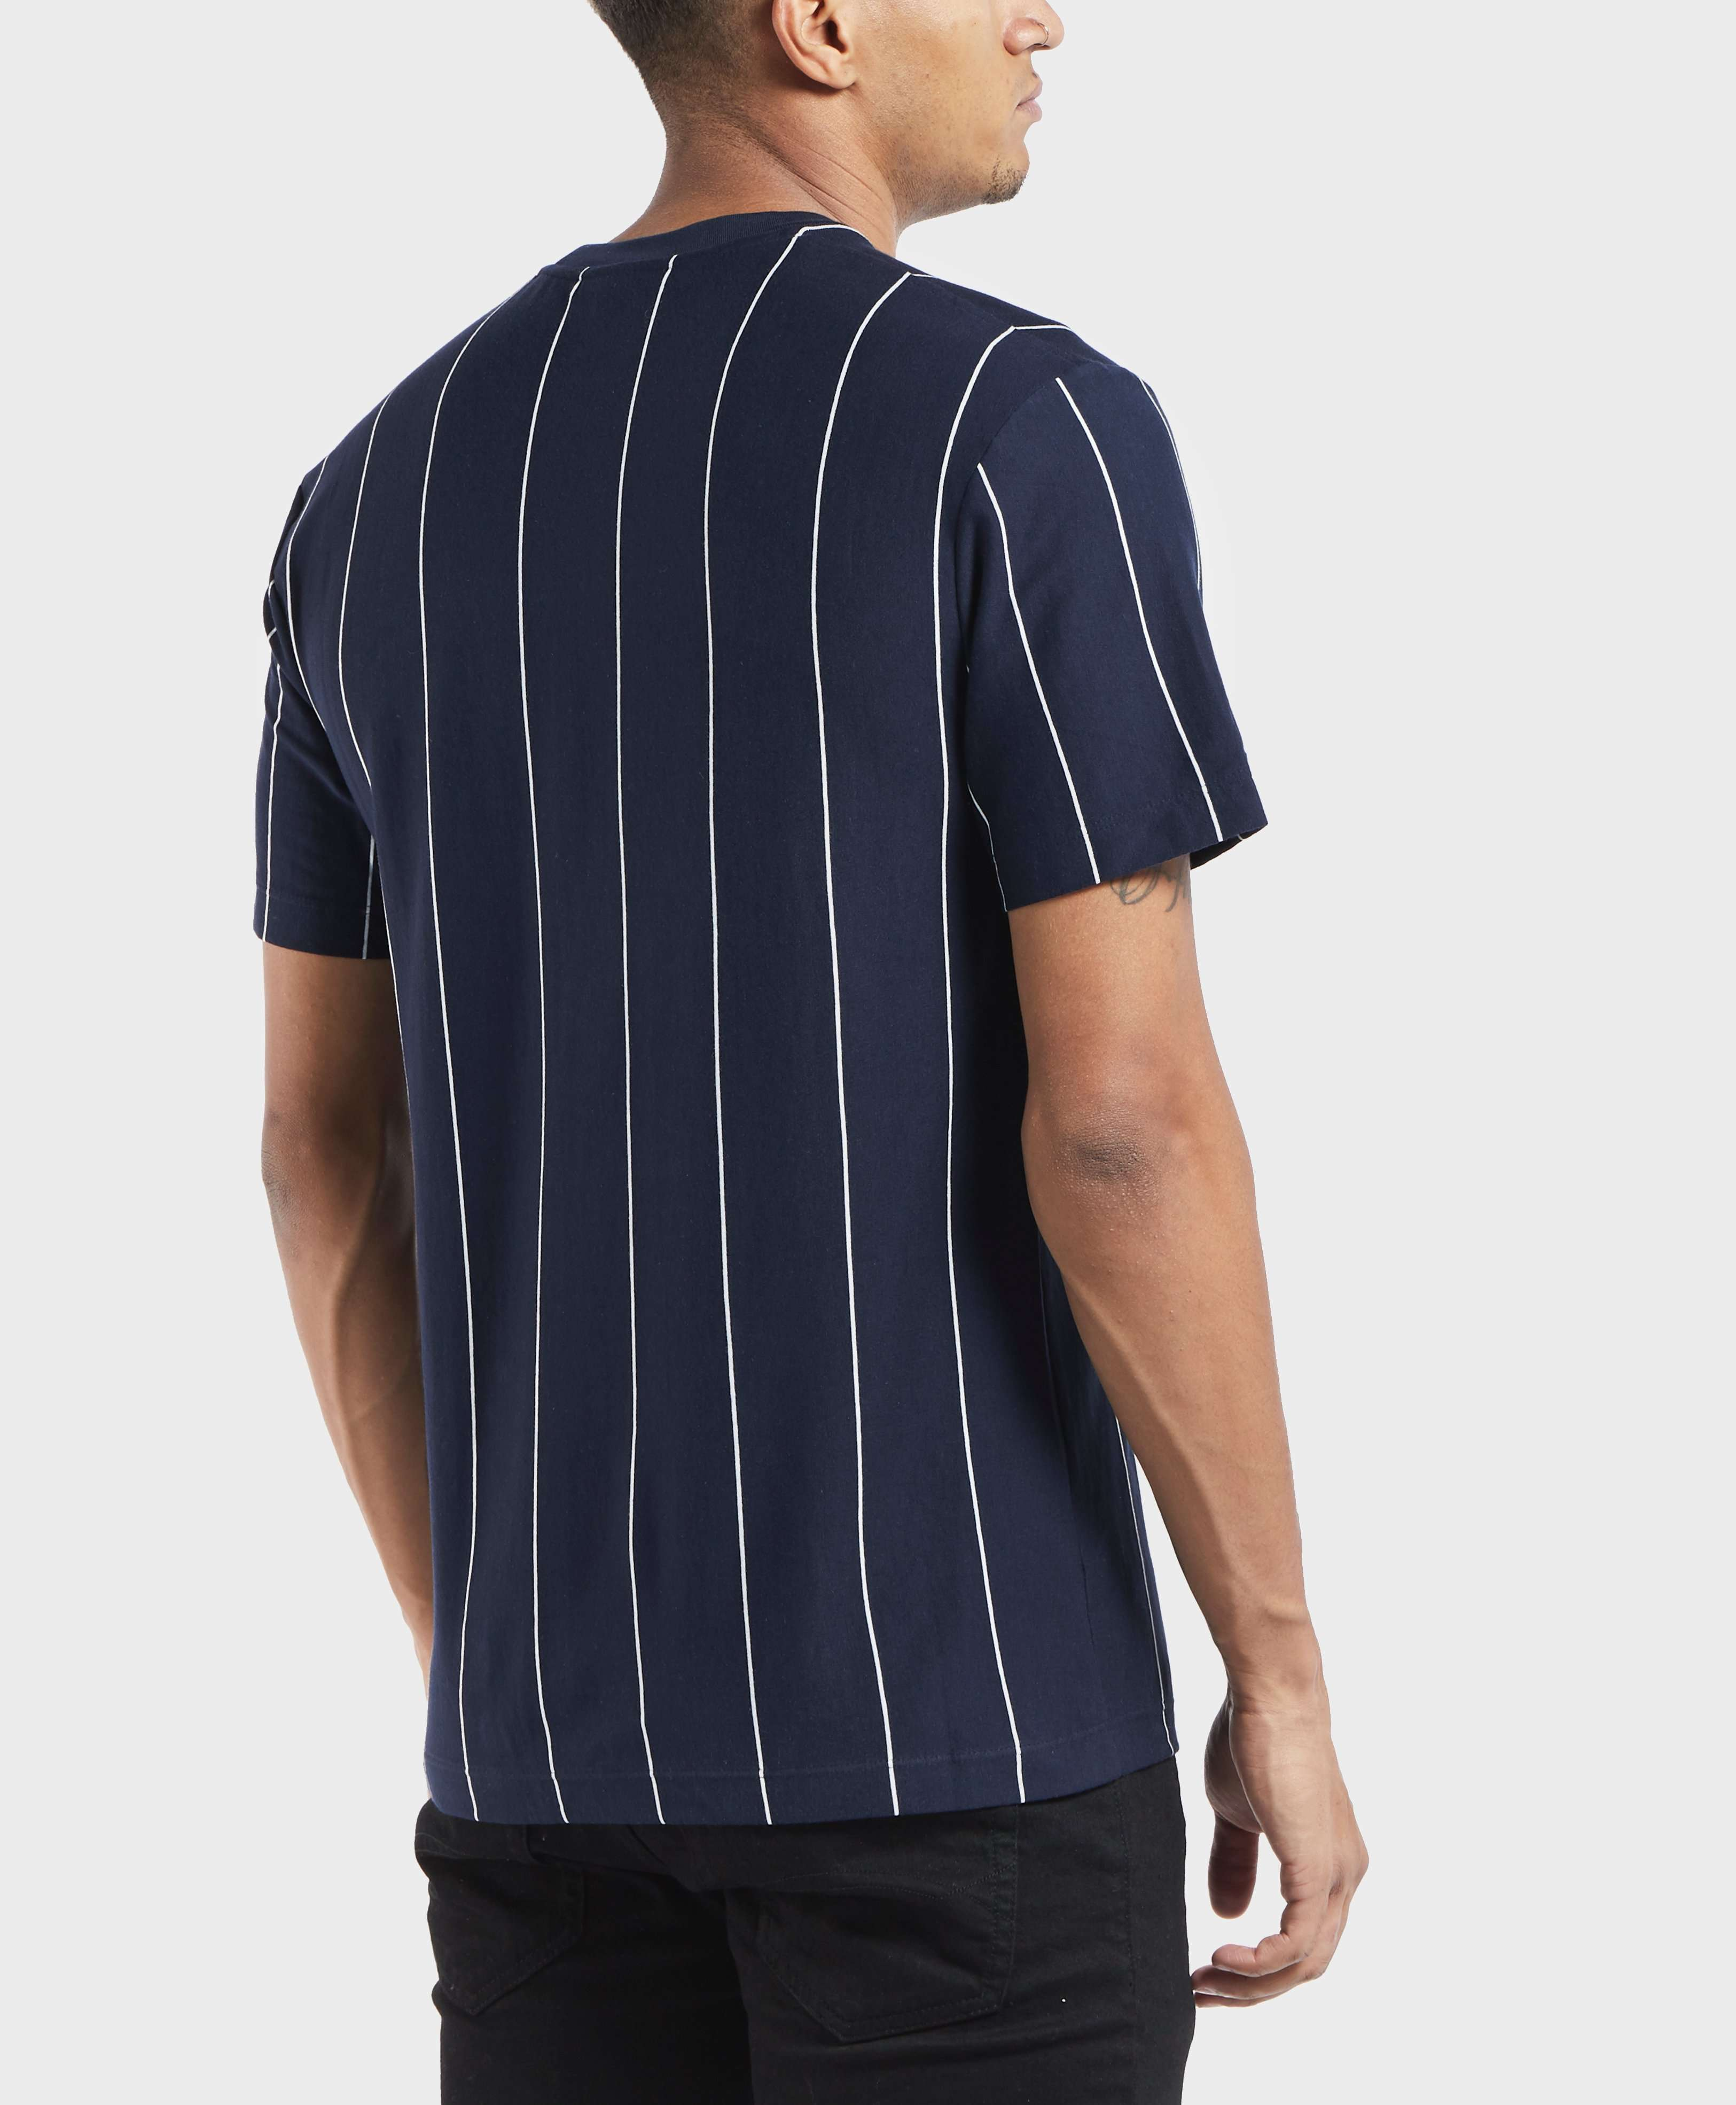 Lacoste Vintage Stripe Short Sleeve T-Shirt